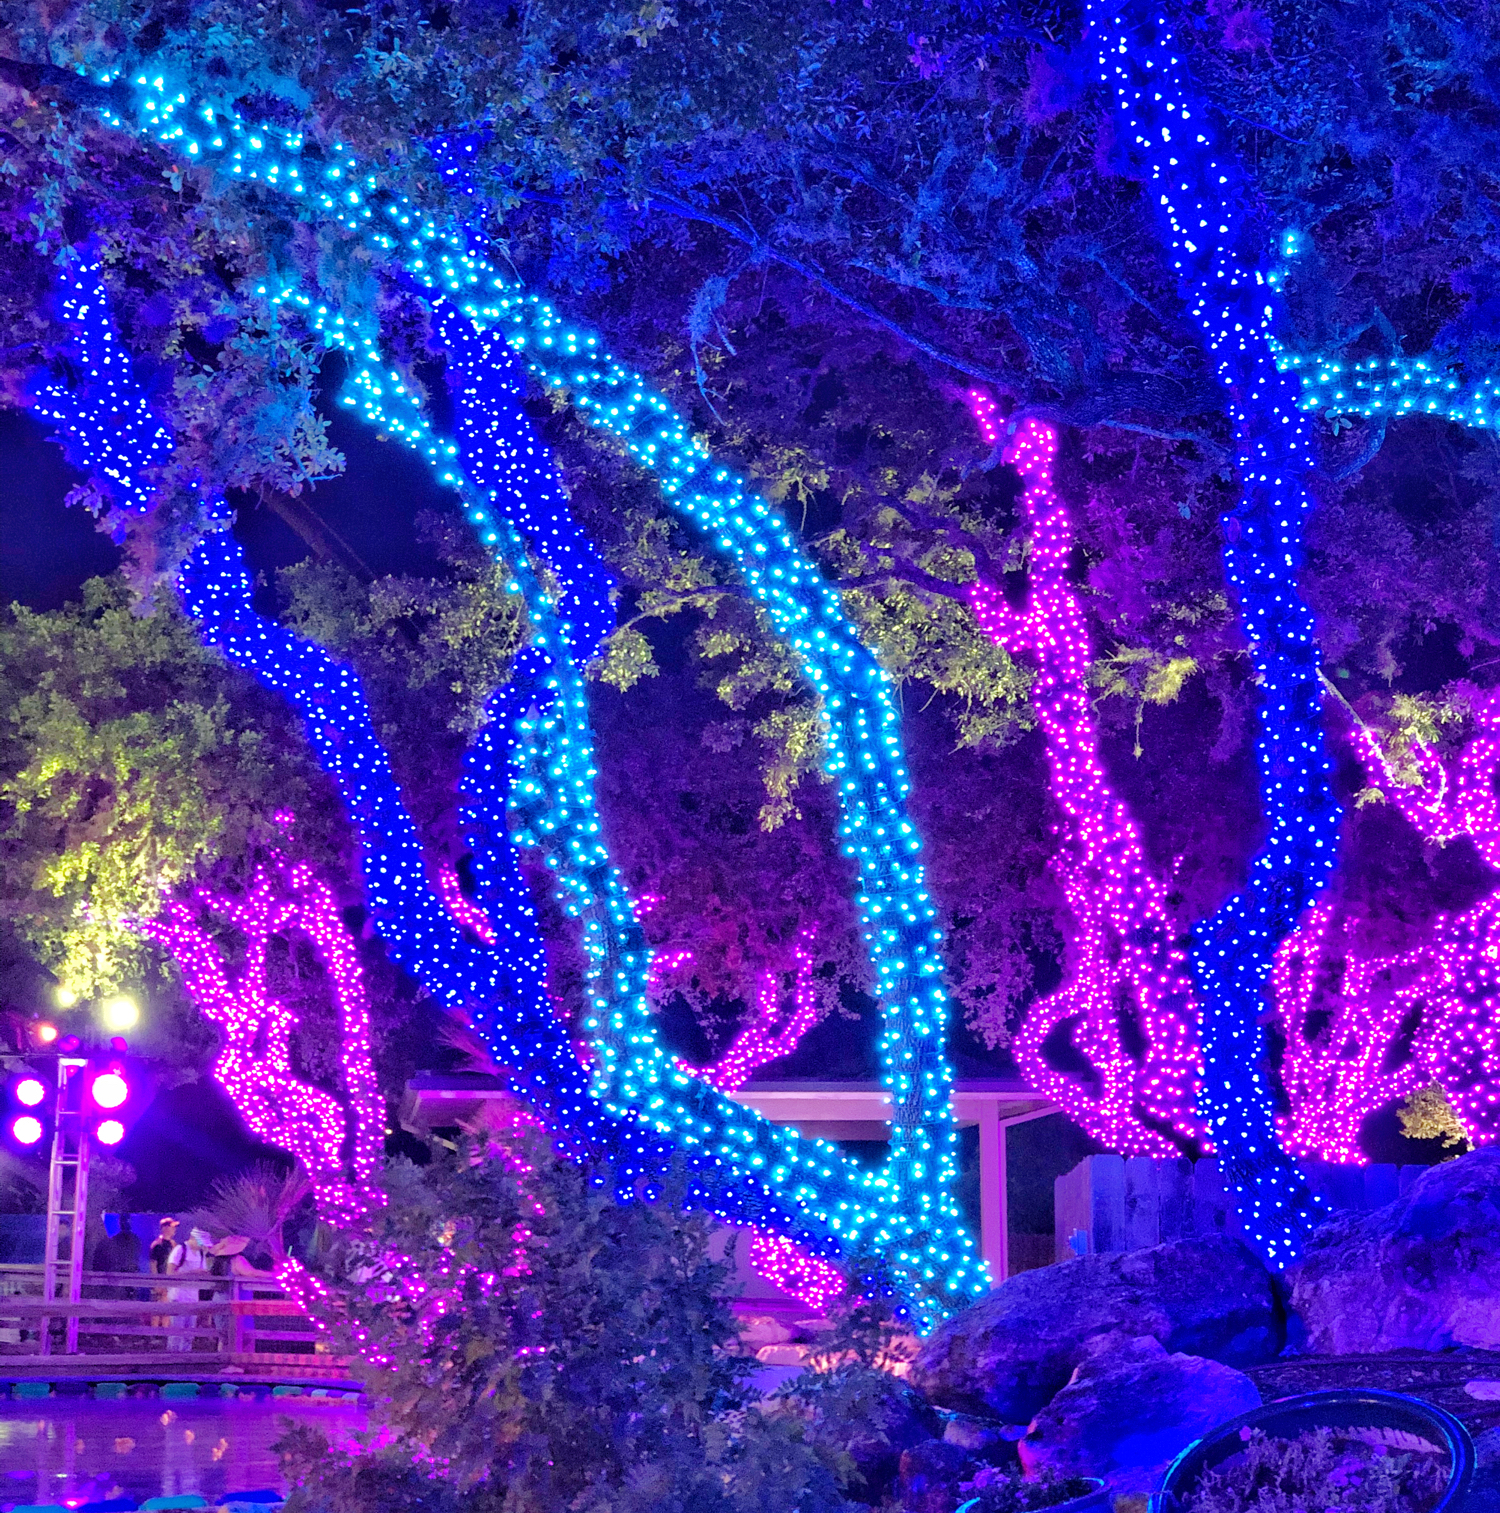 Neon Lights on Trees at SeaWorld